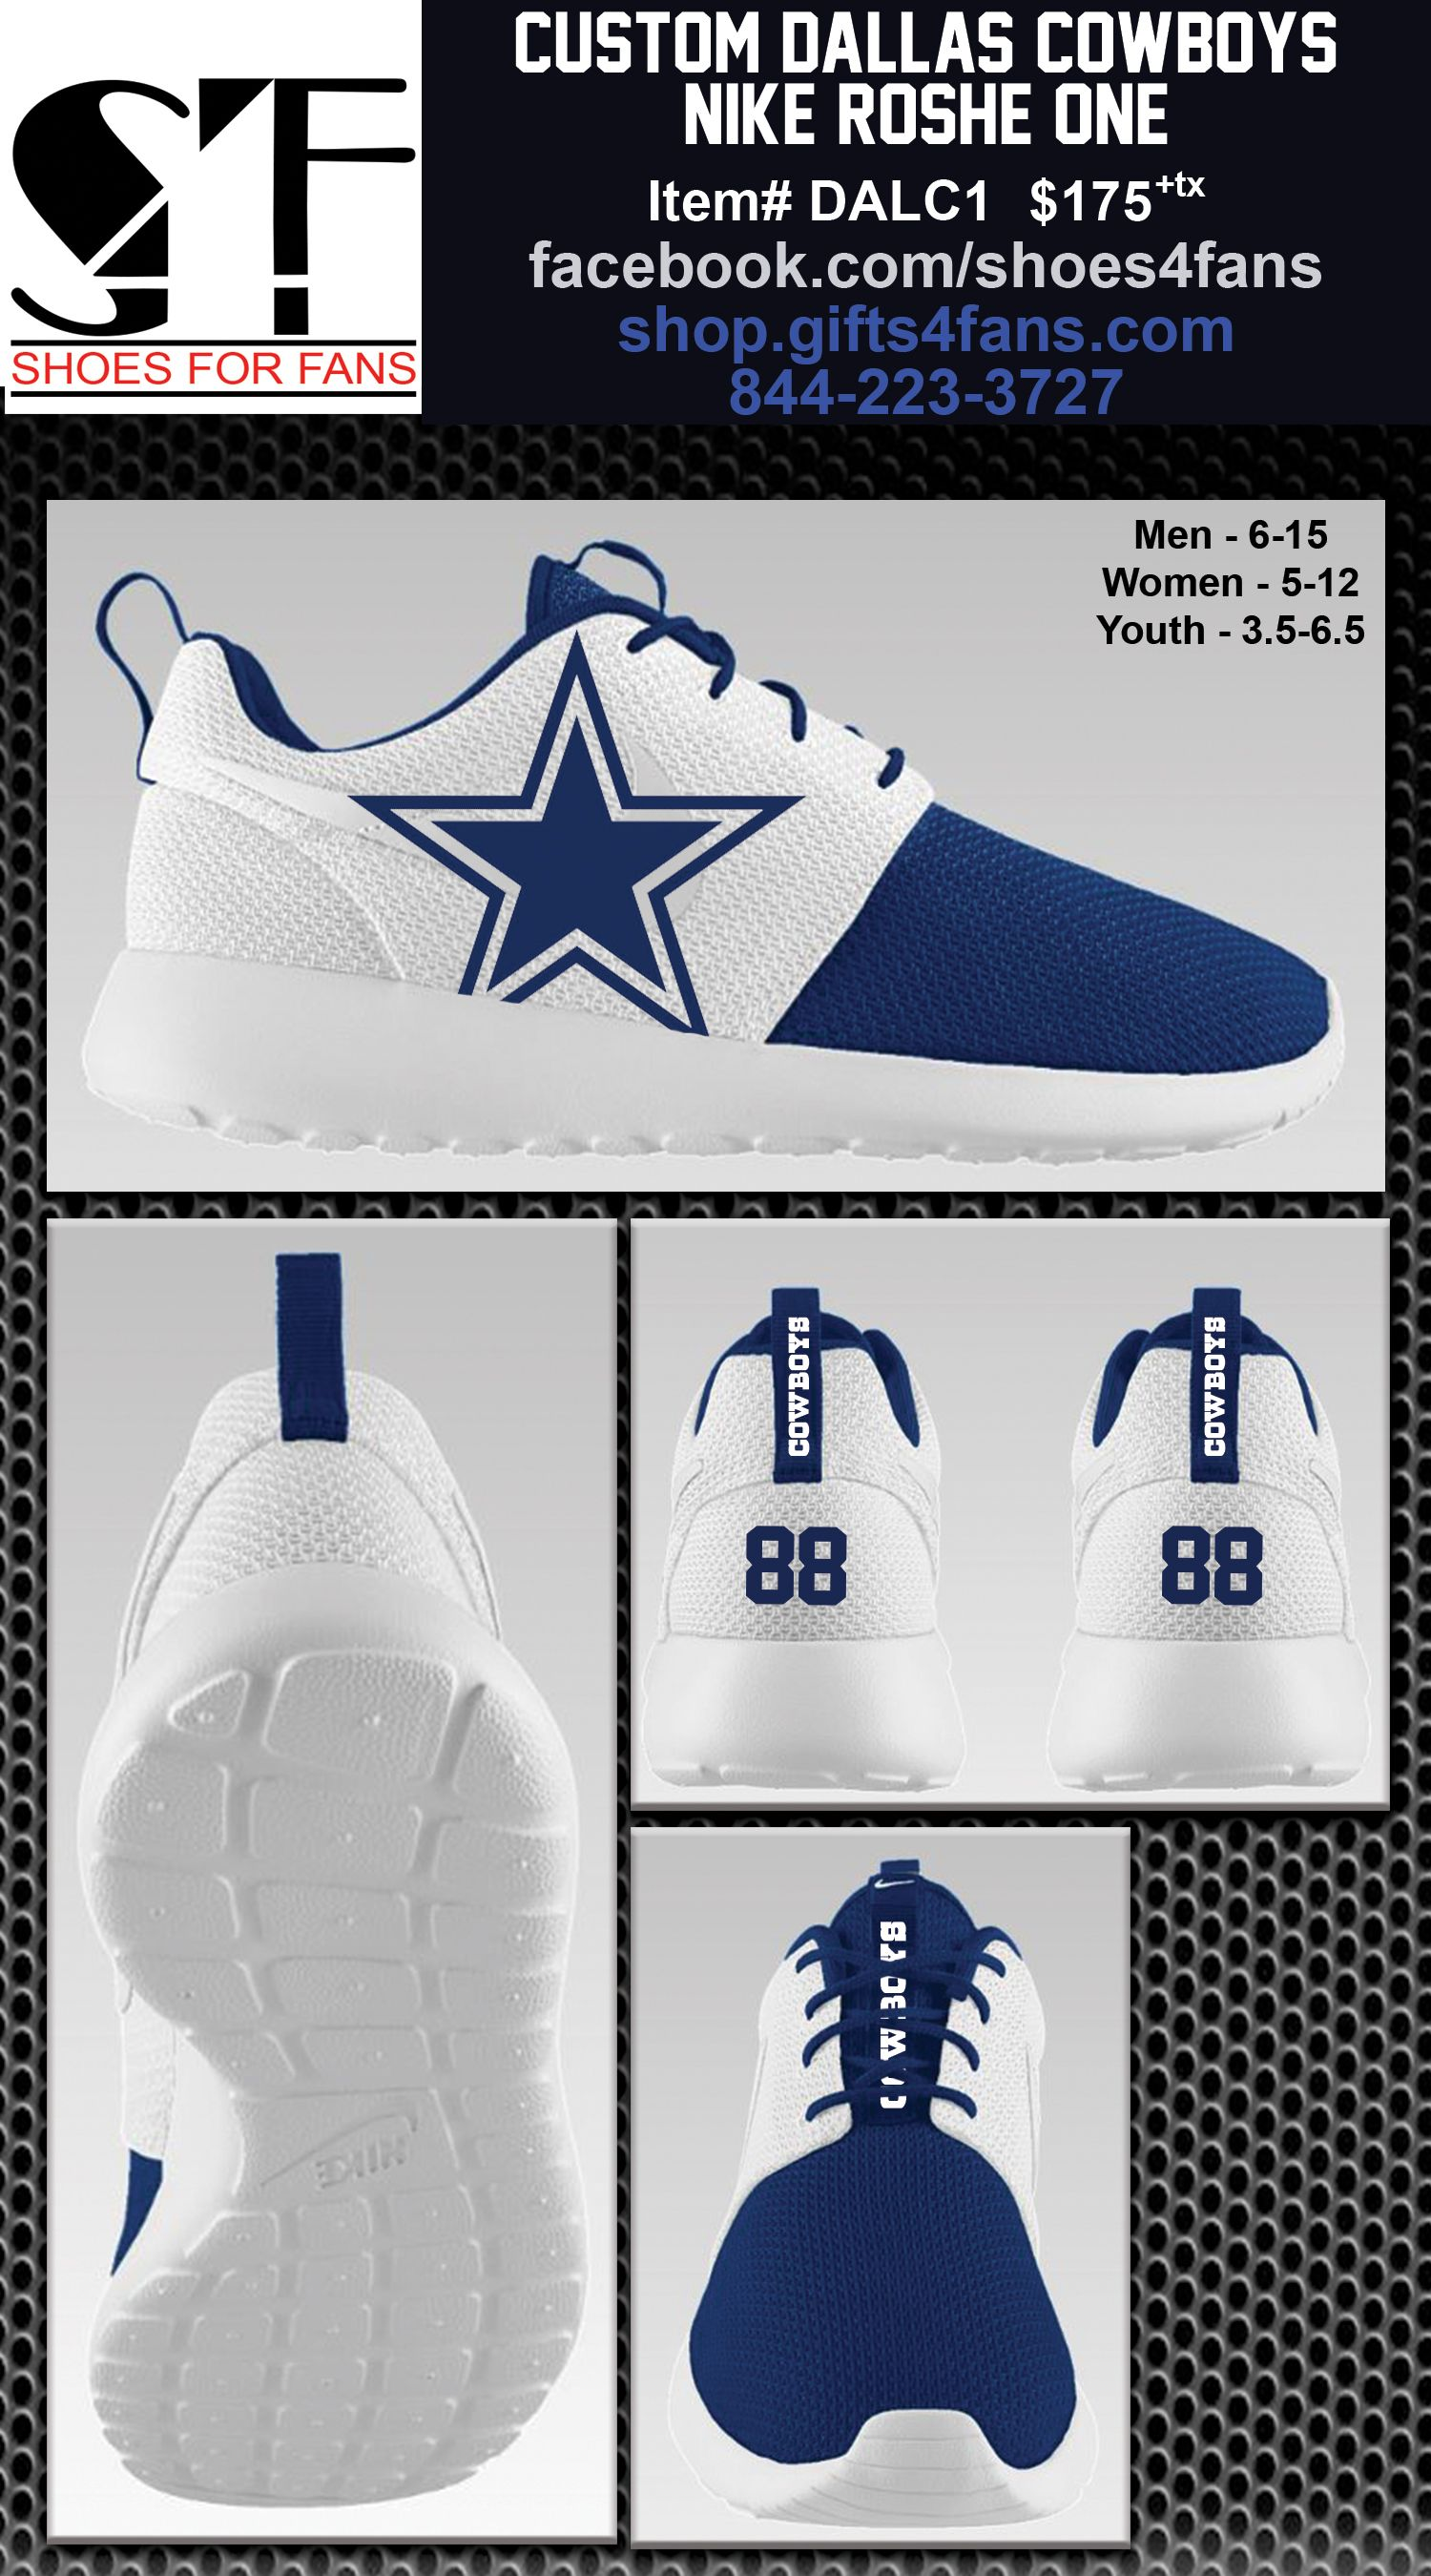 Cheap Dallas Cowboys Nike Roshe One Shoes | I LOVE MY COWBOYS!!! | Dallas